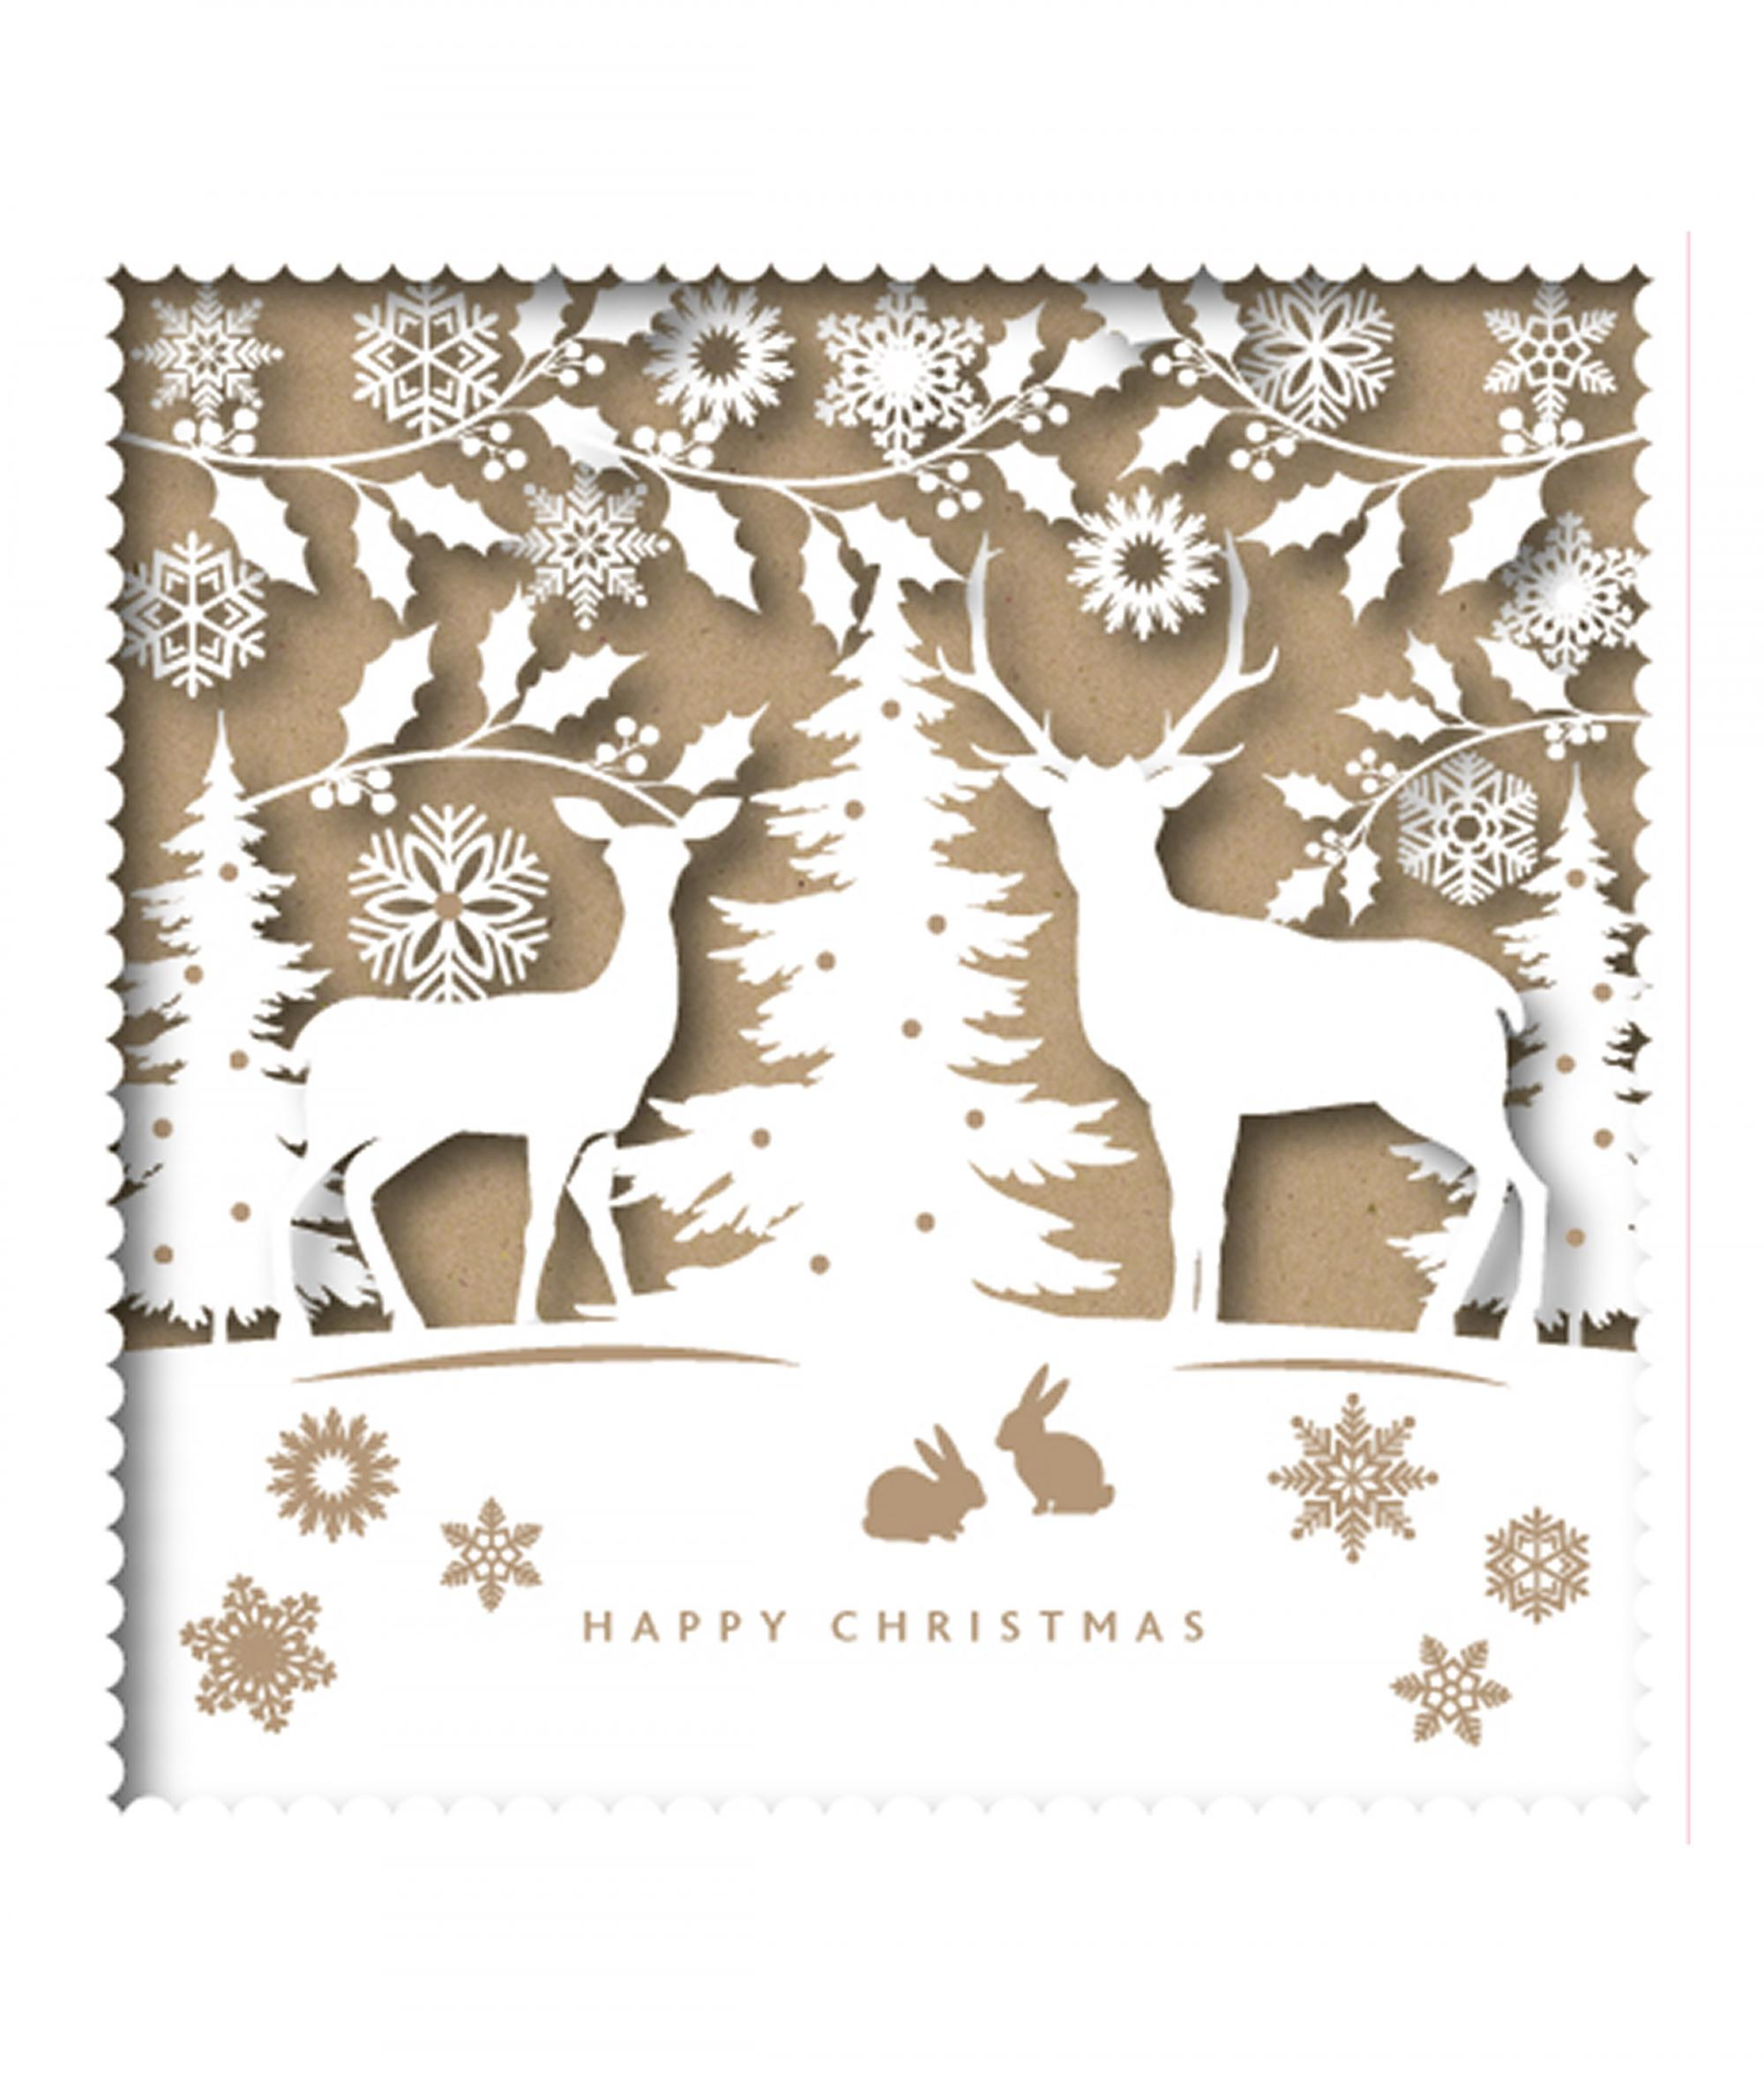 Silhouette Reindeer Christmas Card - Pack of 10 | Cancer Research UK ...